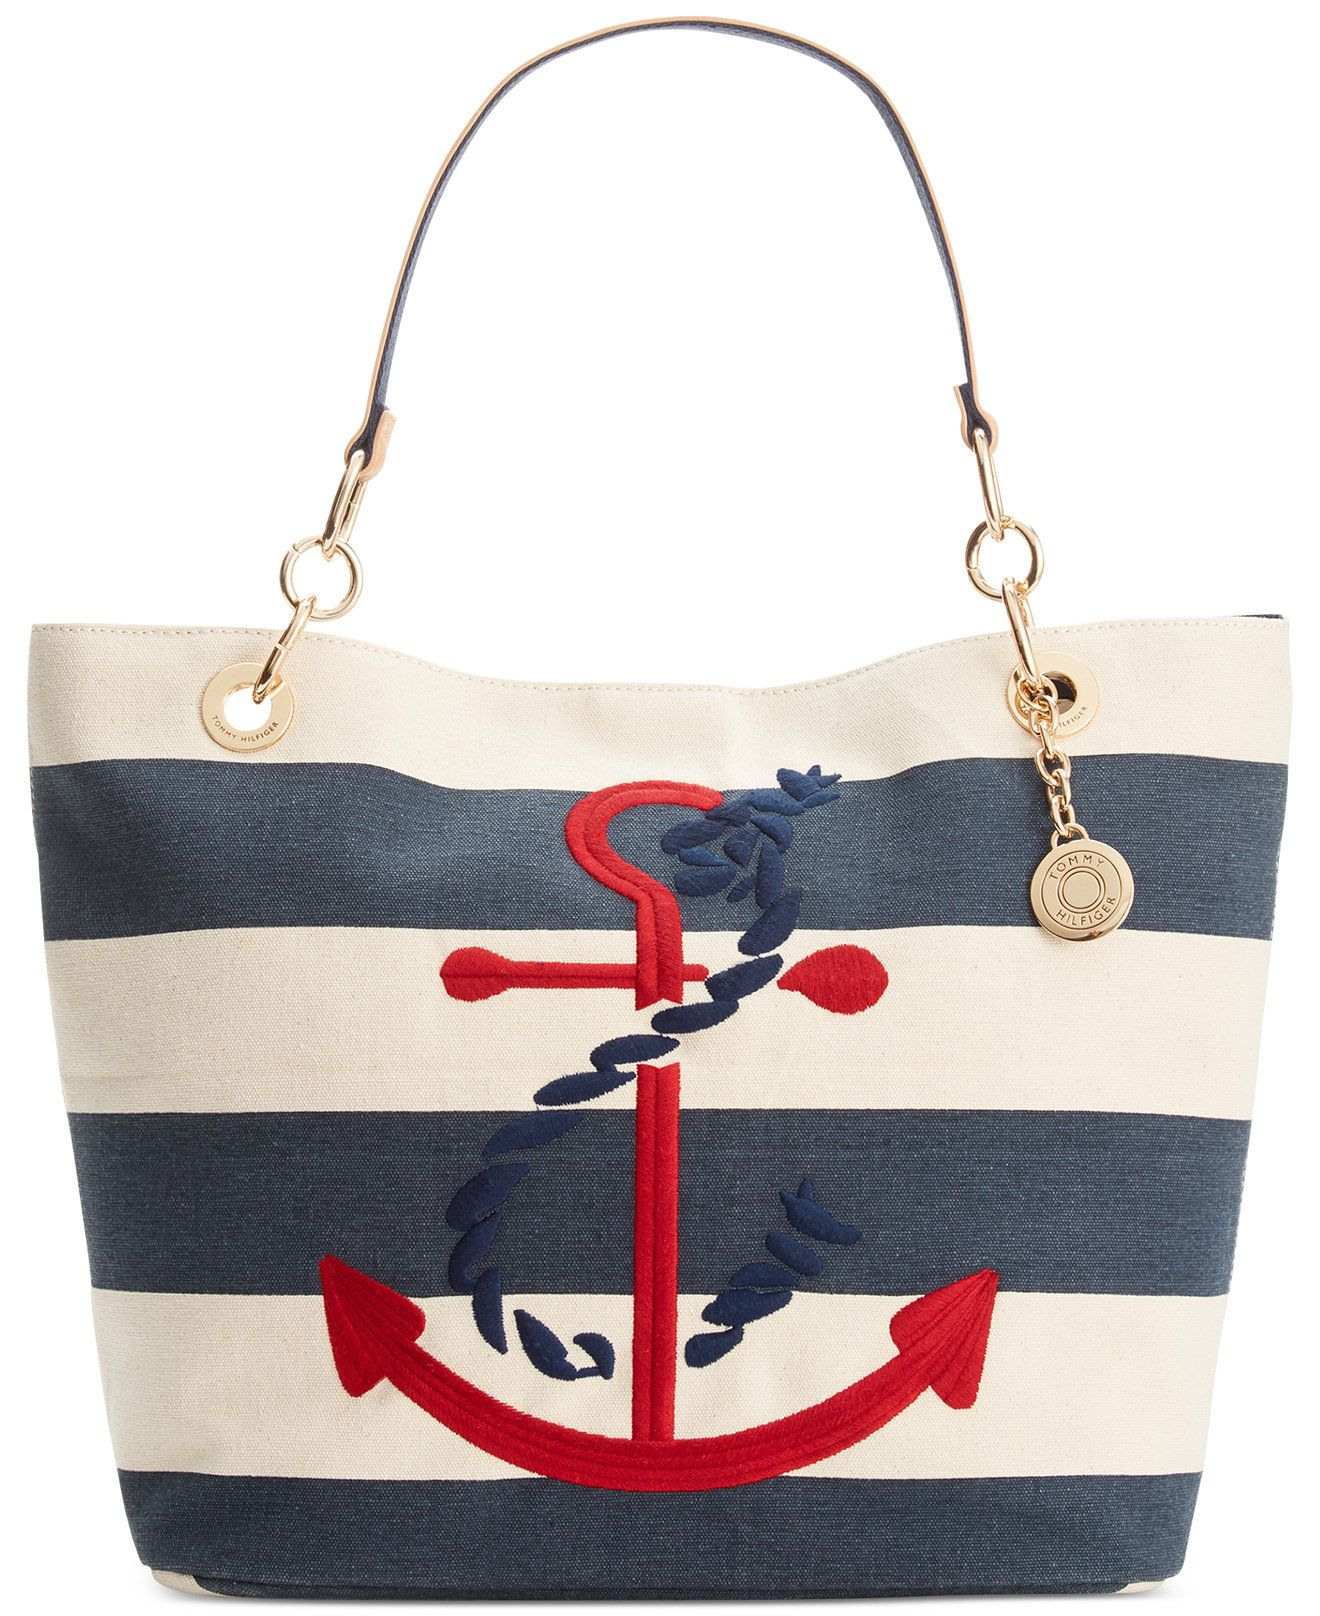 2e476208ef8 Tommy Hilfiger TH Signature Embroidered Anchor Rugby Canvas Tote - Handbags  & Accessories - Macy's